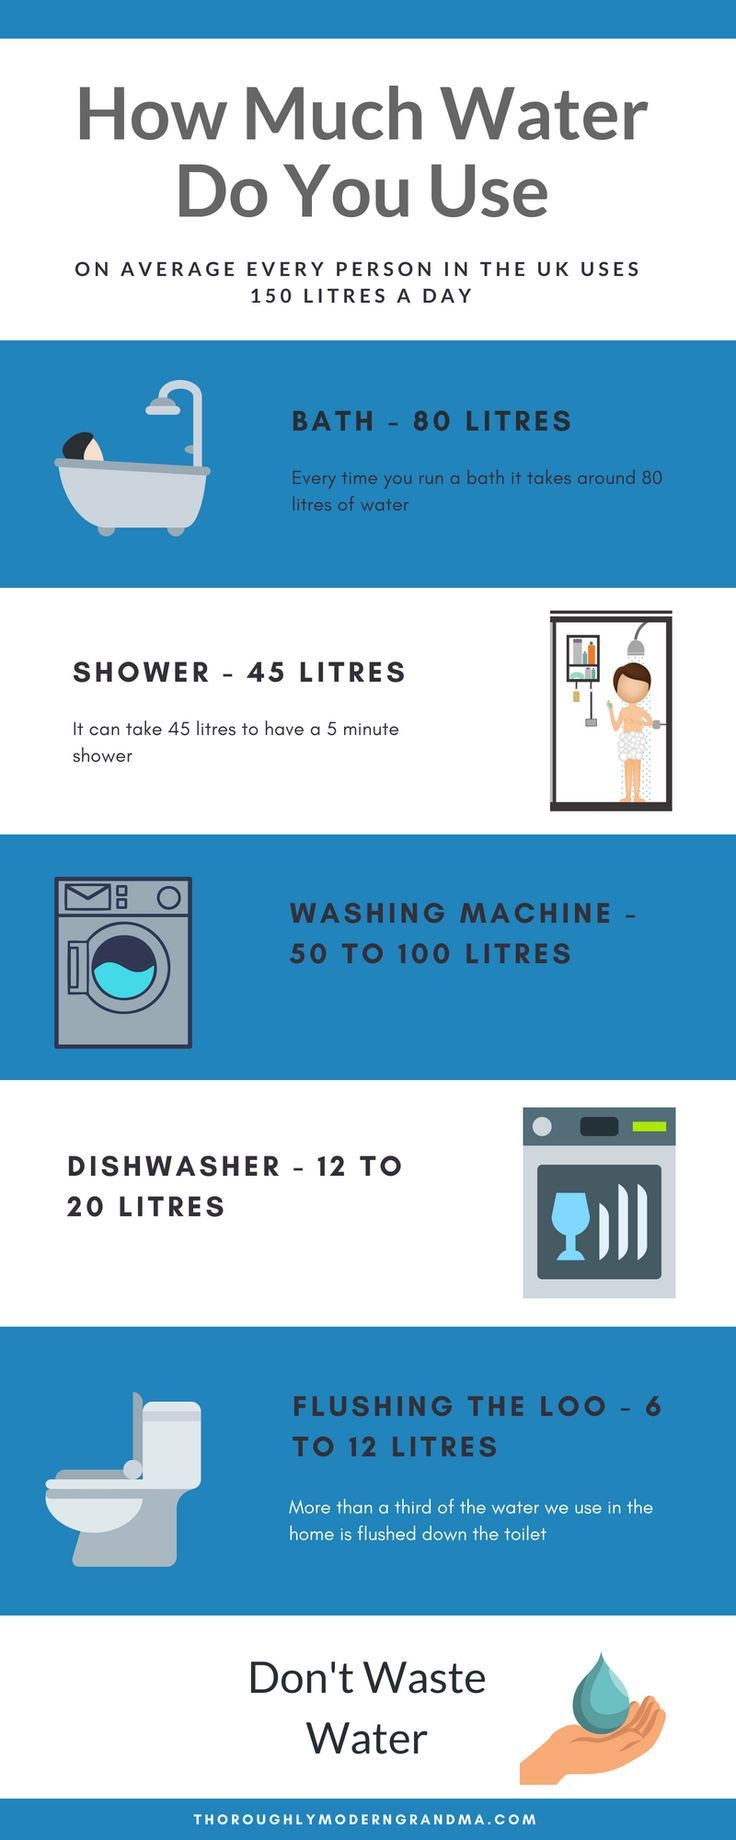 Zero Waste How To Save Water Water Saving Tips Save Water